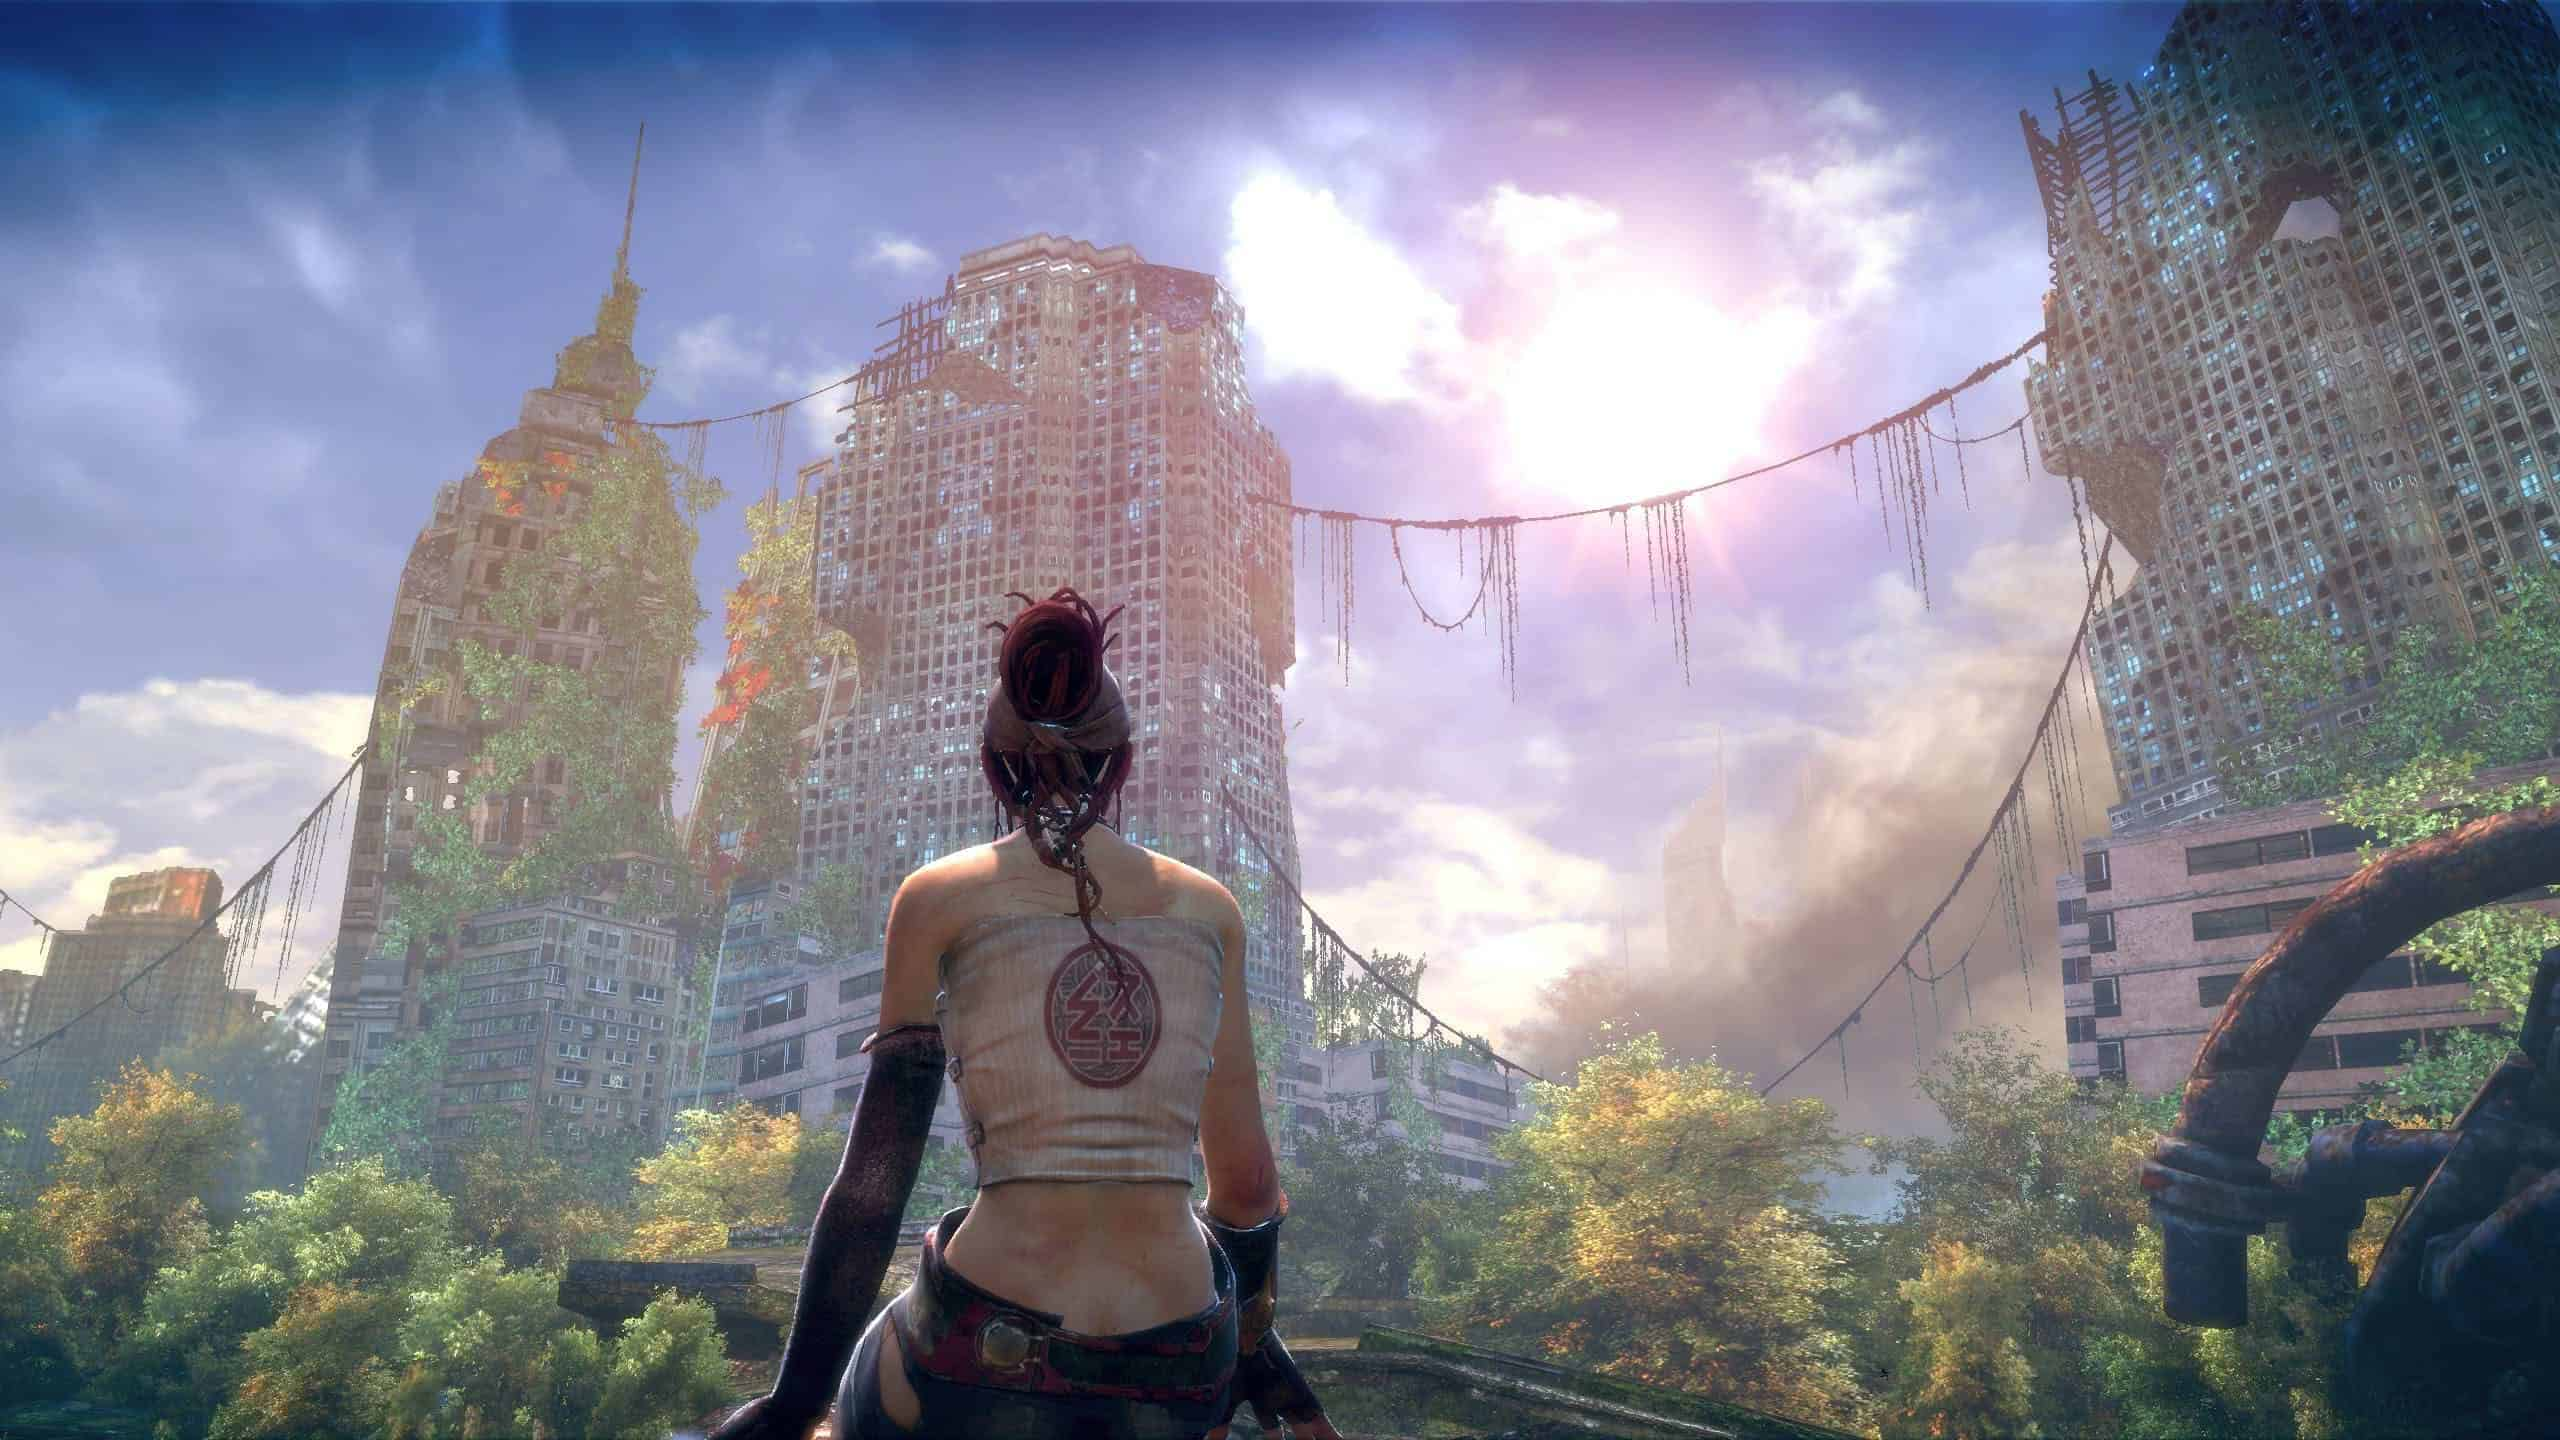 Fall Wallpaper 1440p Enslaved Odyssey To The West New York Wqhd 1440p Wallpaper